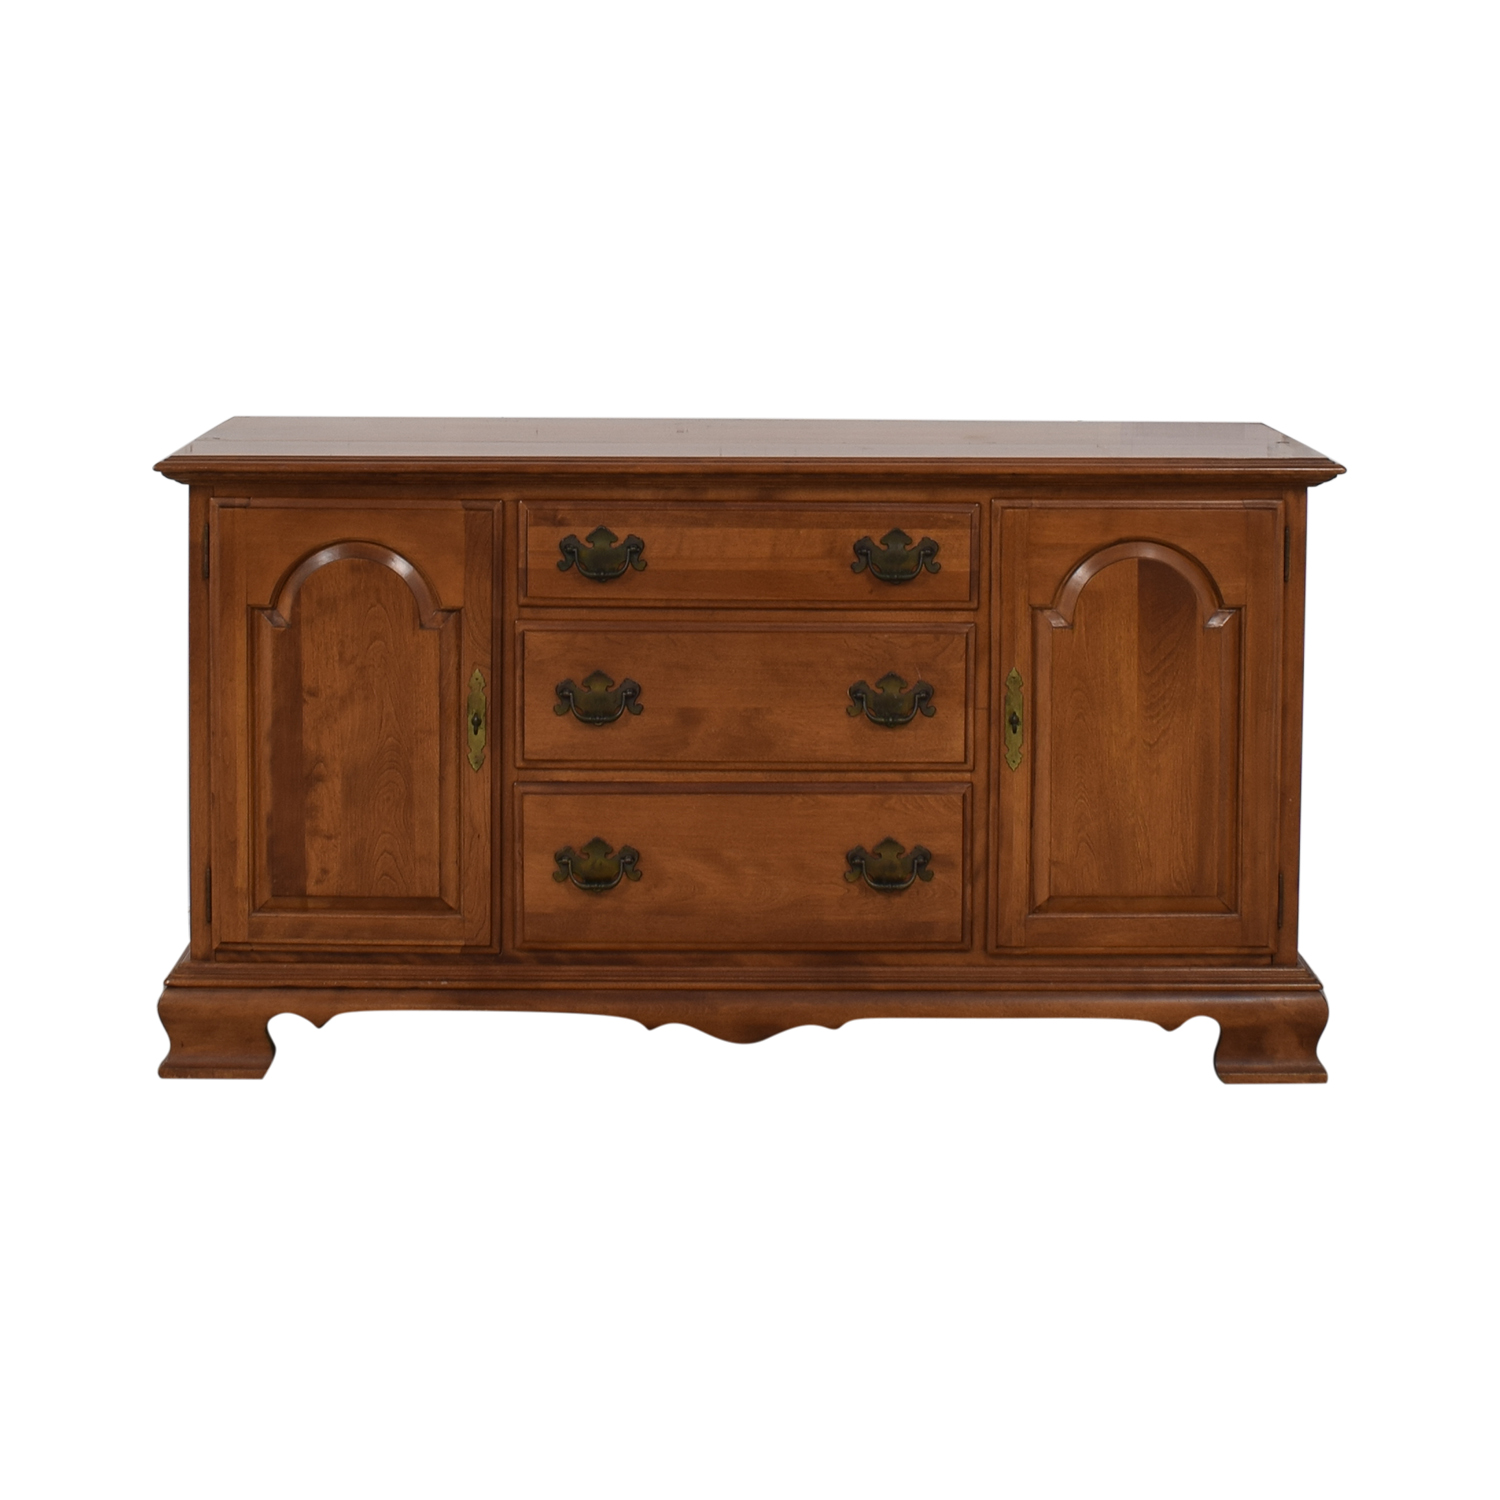 Ethan Allen Ethan Allen Wood Three-Drawer Sideboard for sale